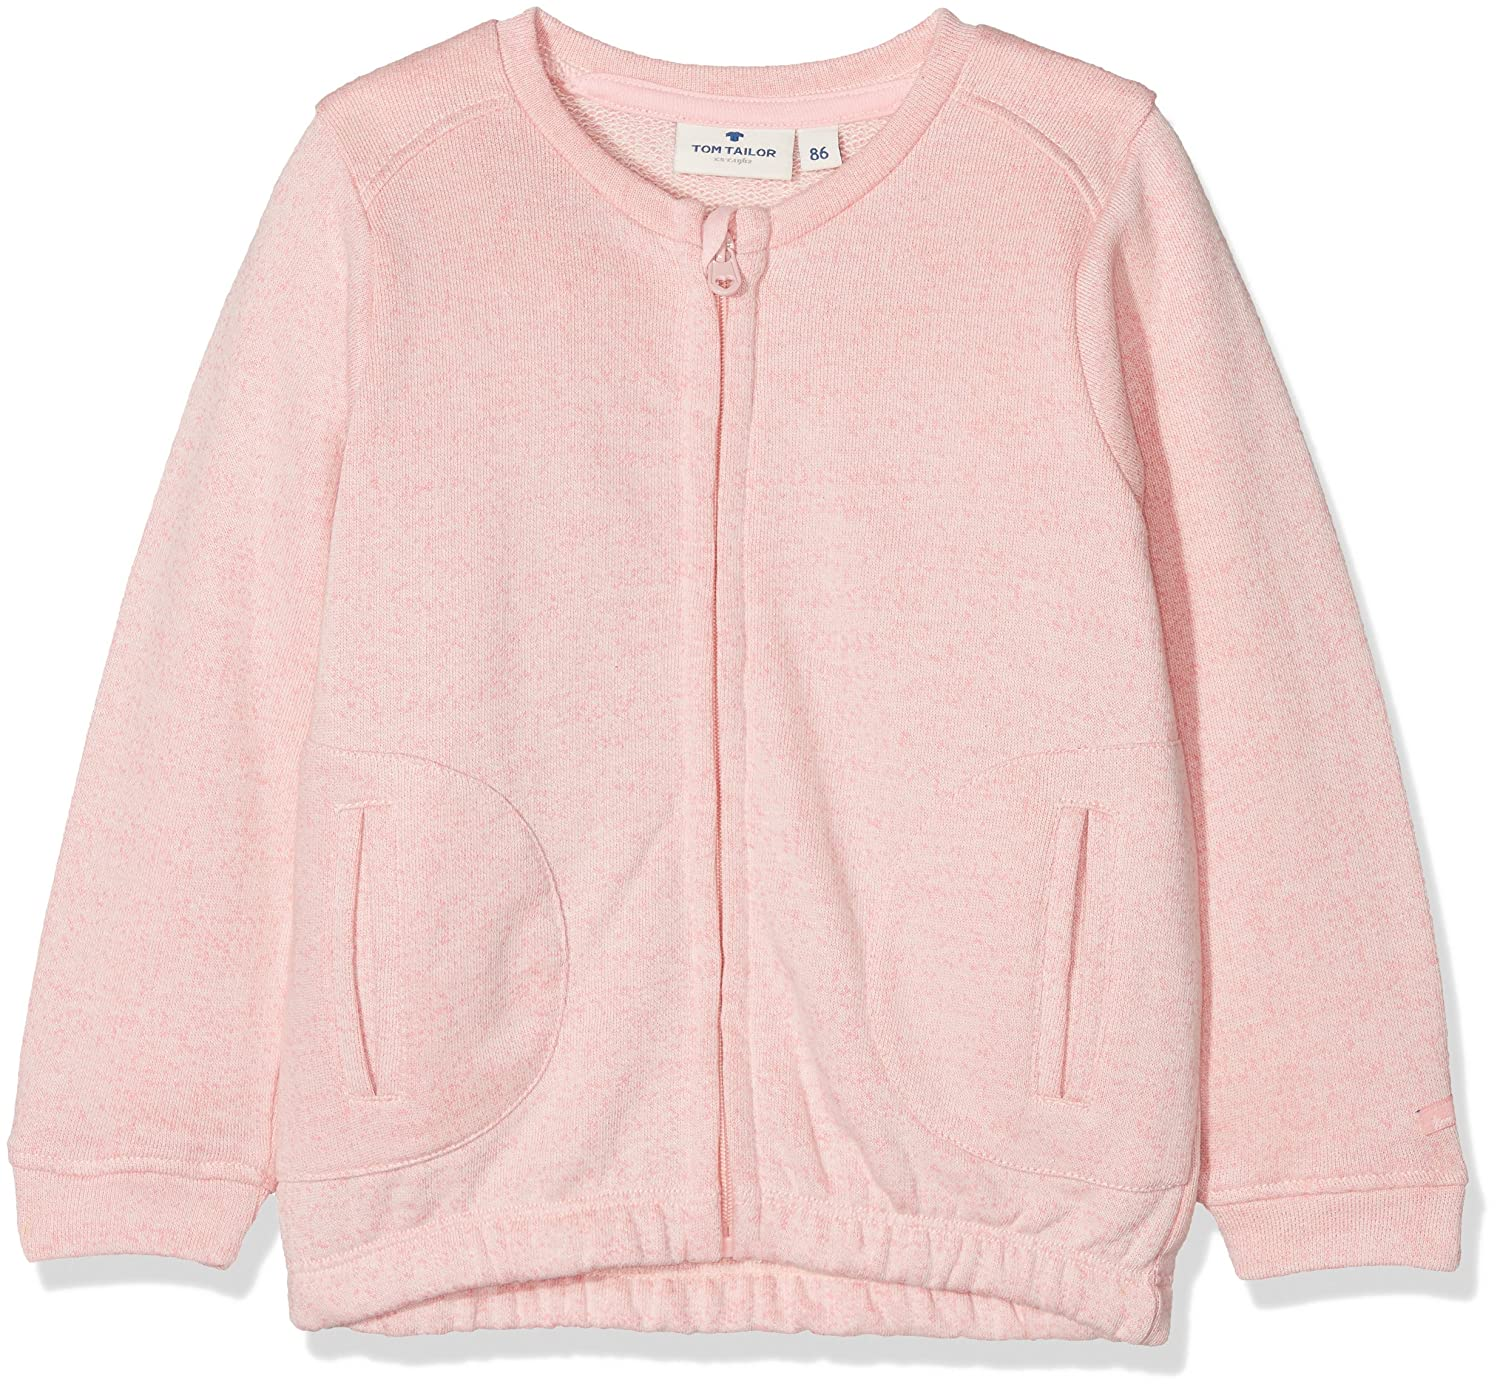 Tom Tailor Baby Girls' Sweatjackets Track Jacket TOM TAILOR Kids 25317820021